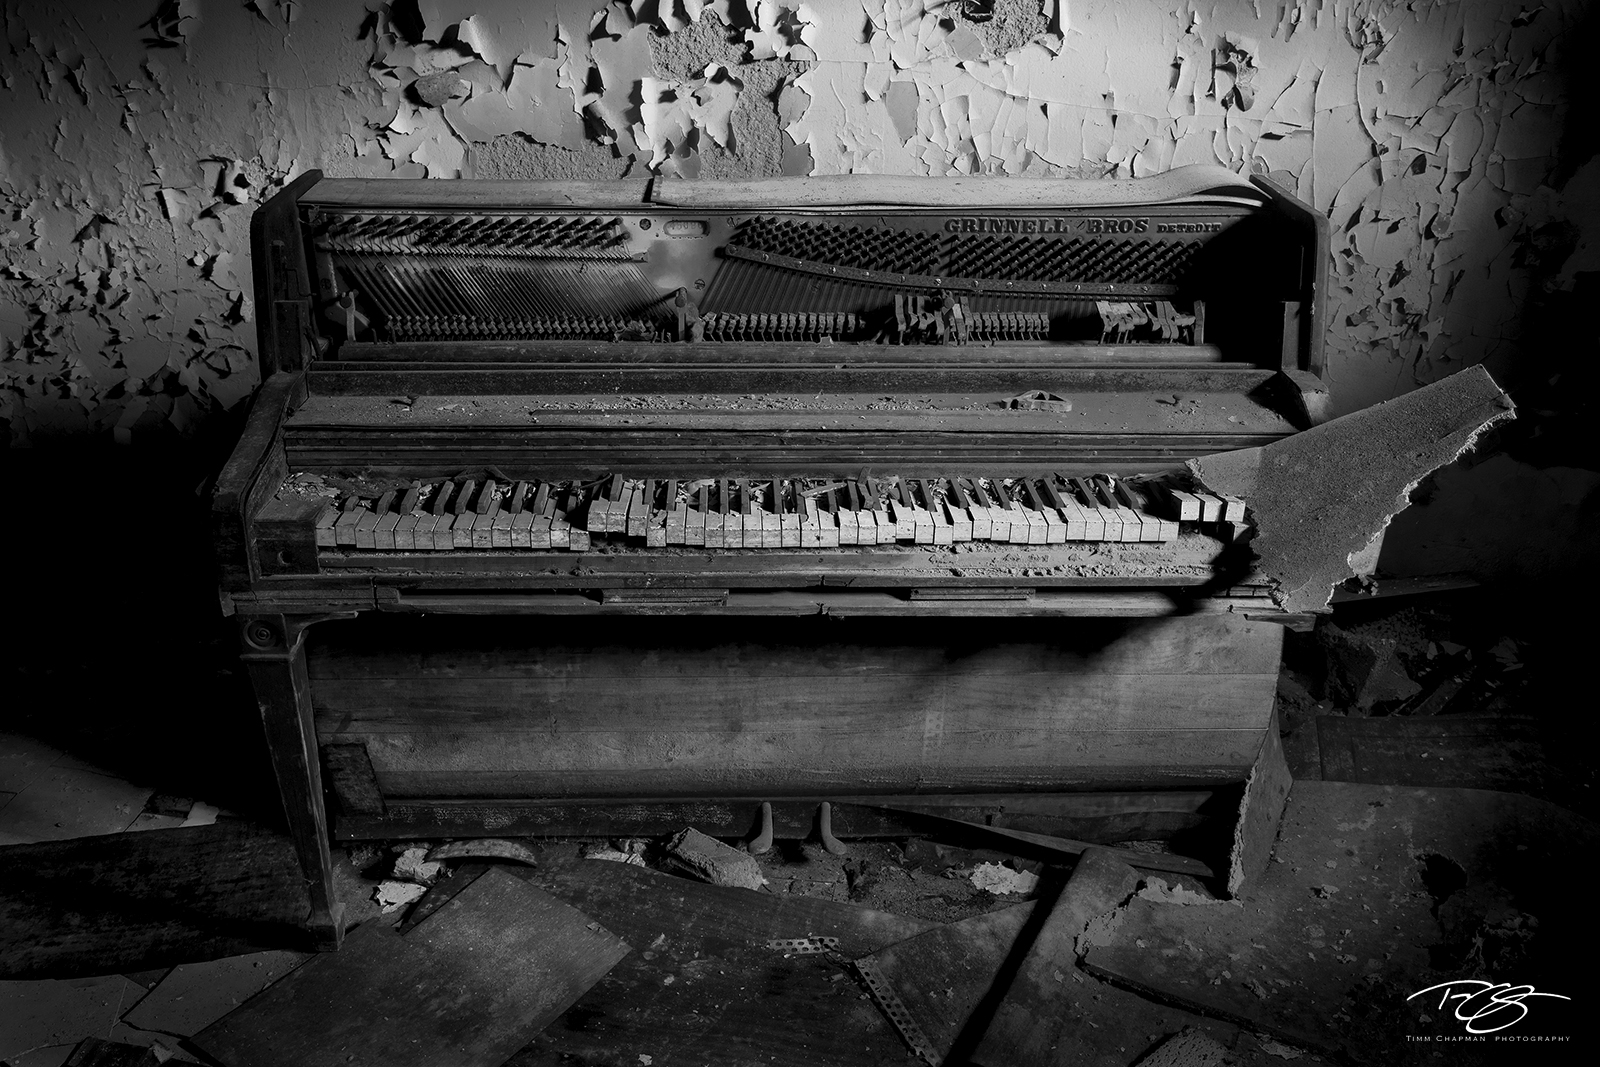 Piano, photos, pictures, black, white, decay, abandoned, keys, peeling paint, dramatic light, urbex, ruins, reclamation, forgotten, music, instrument, dramatic, photo